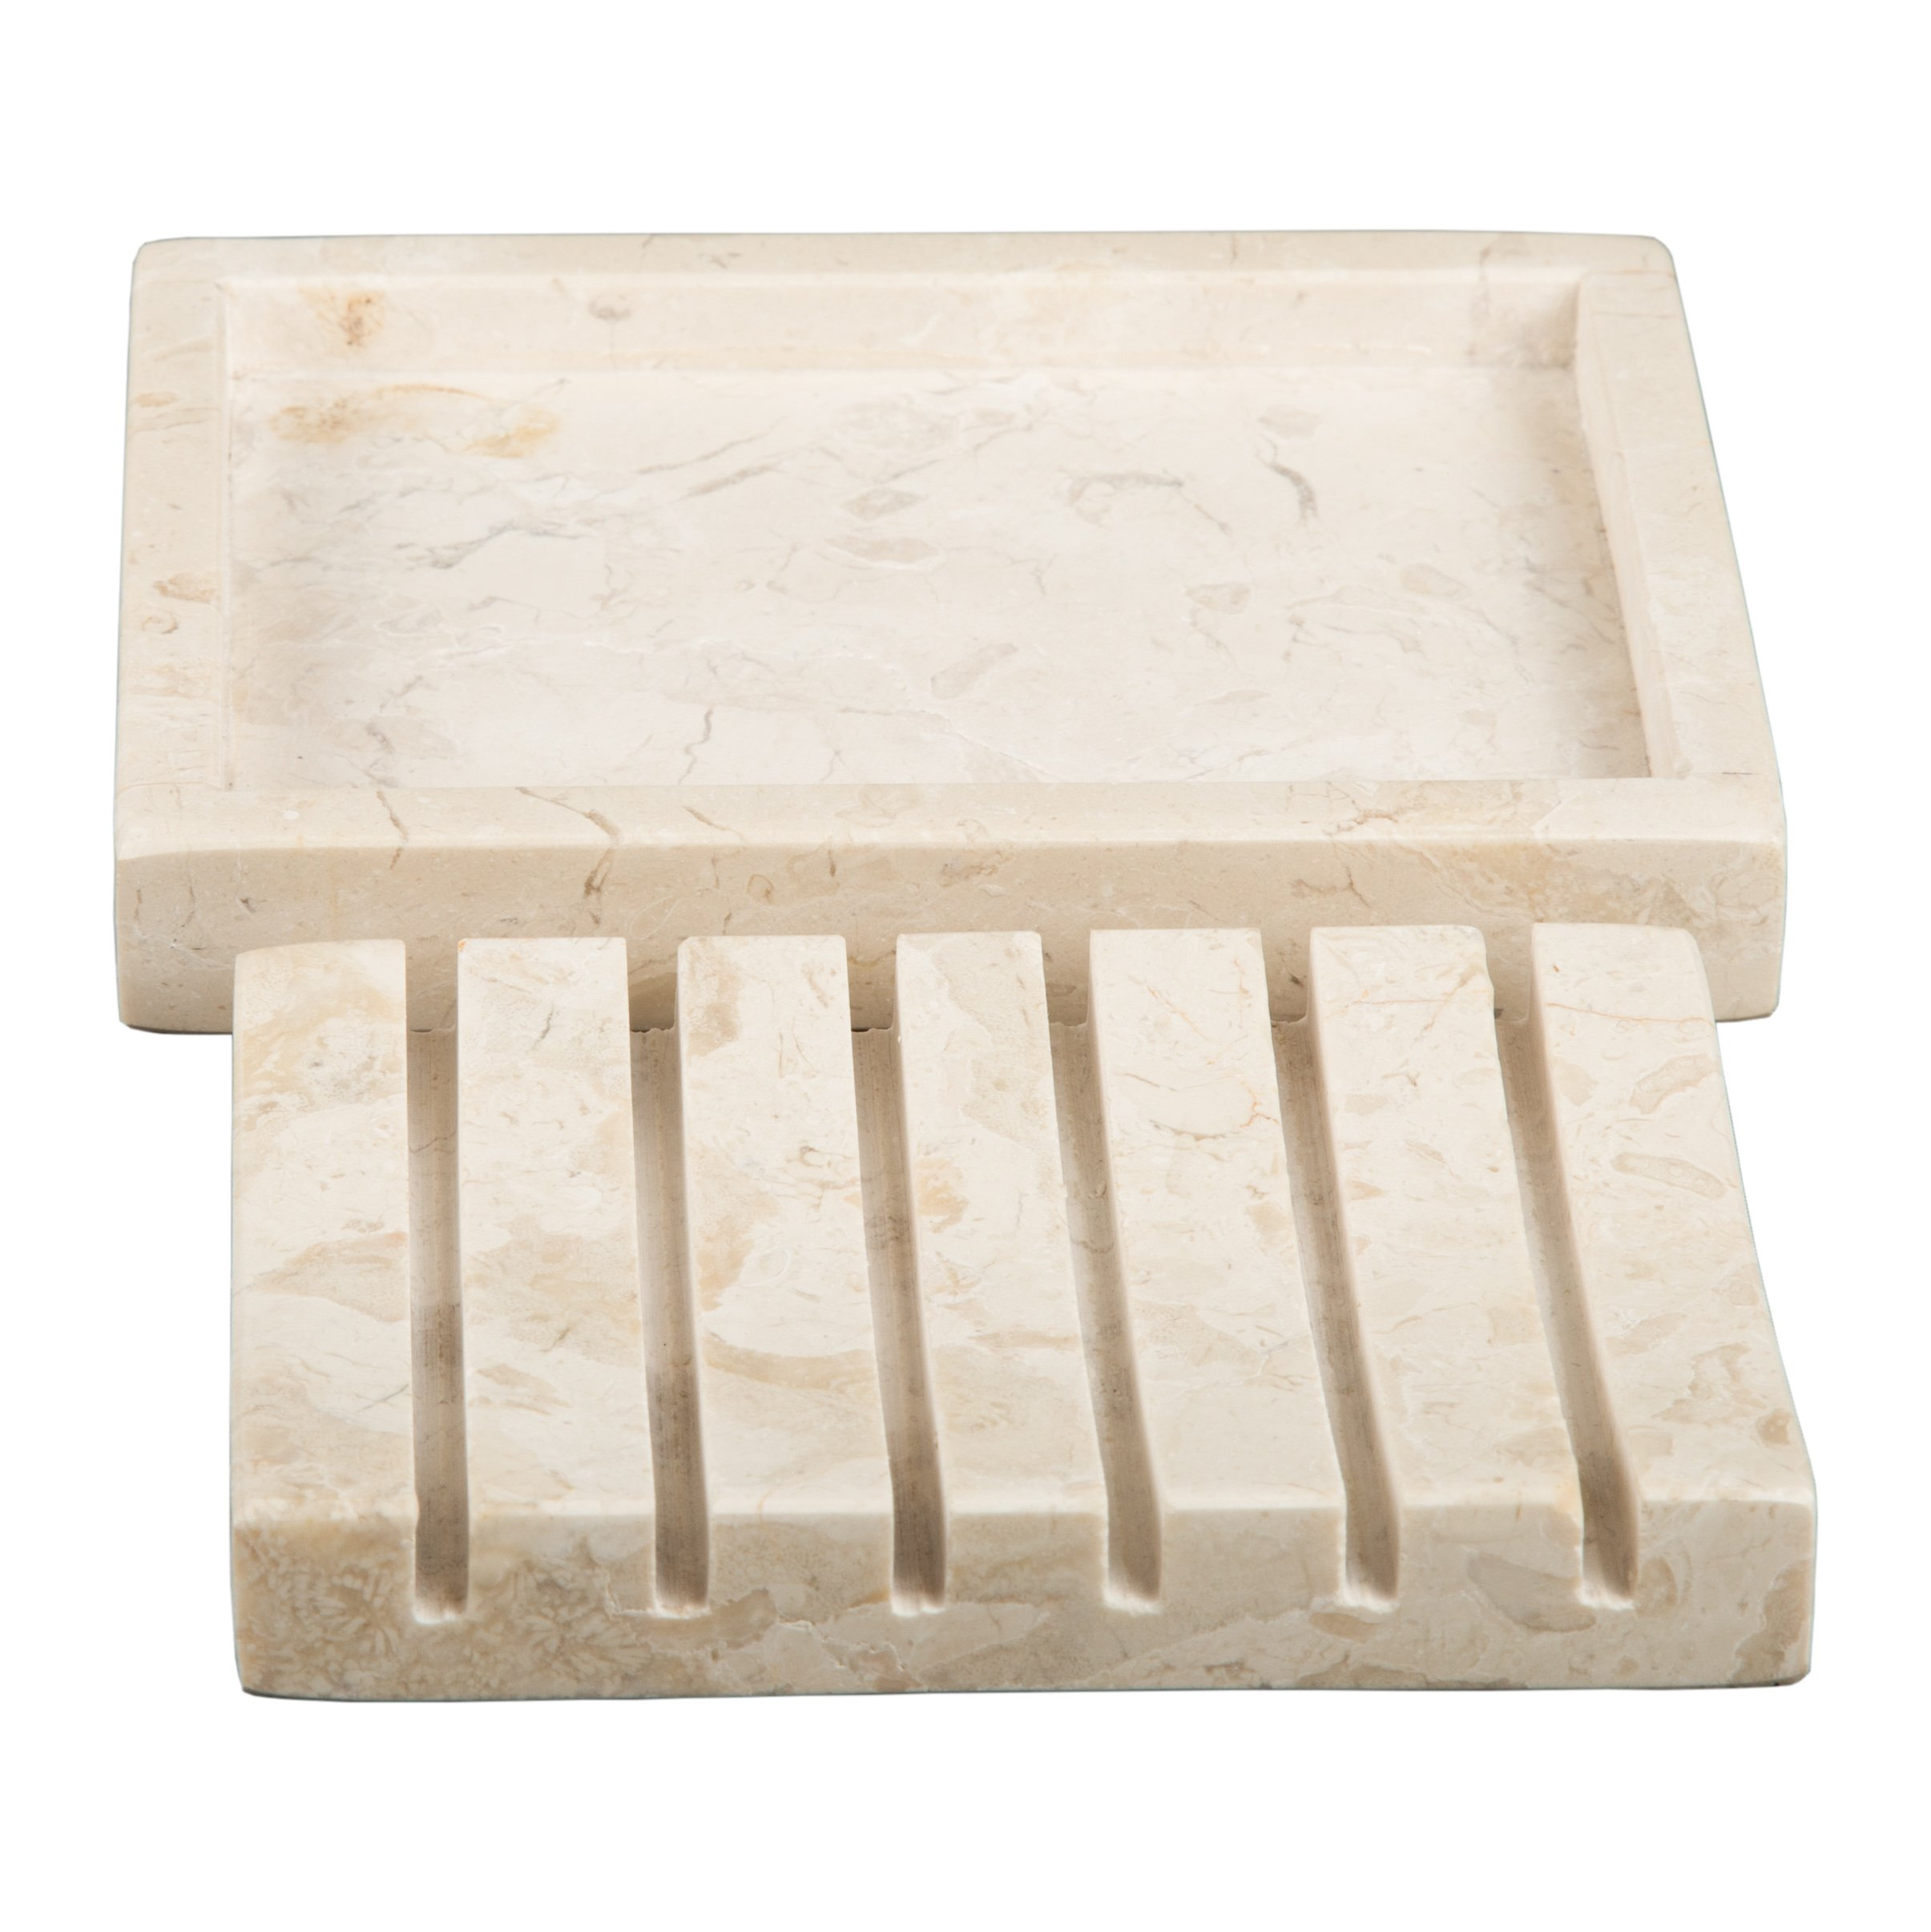 Creative Home Natural Champagne Marble Stone SPA Collection 2 Piece Bar Soap Dish, Soap Tray by Creative Home (Image #5)